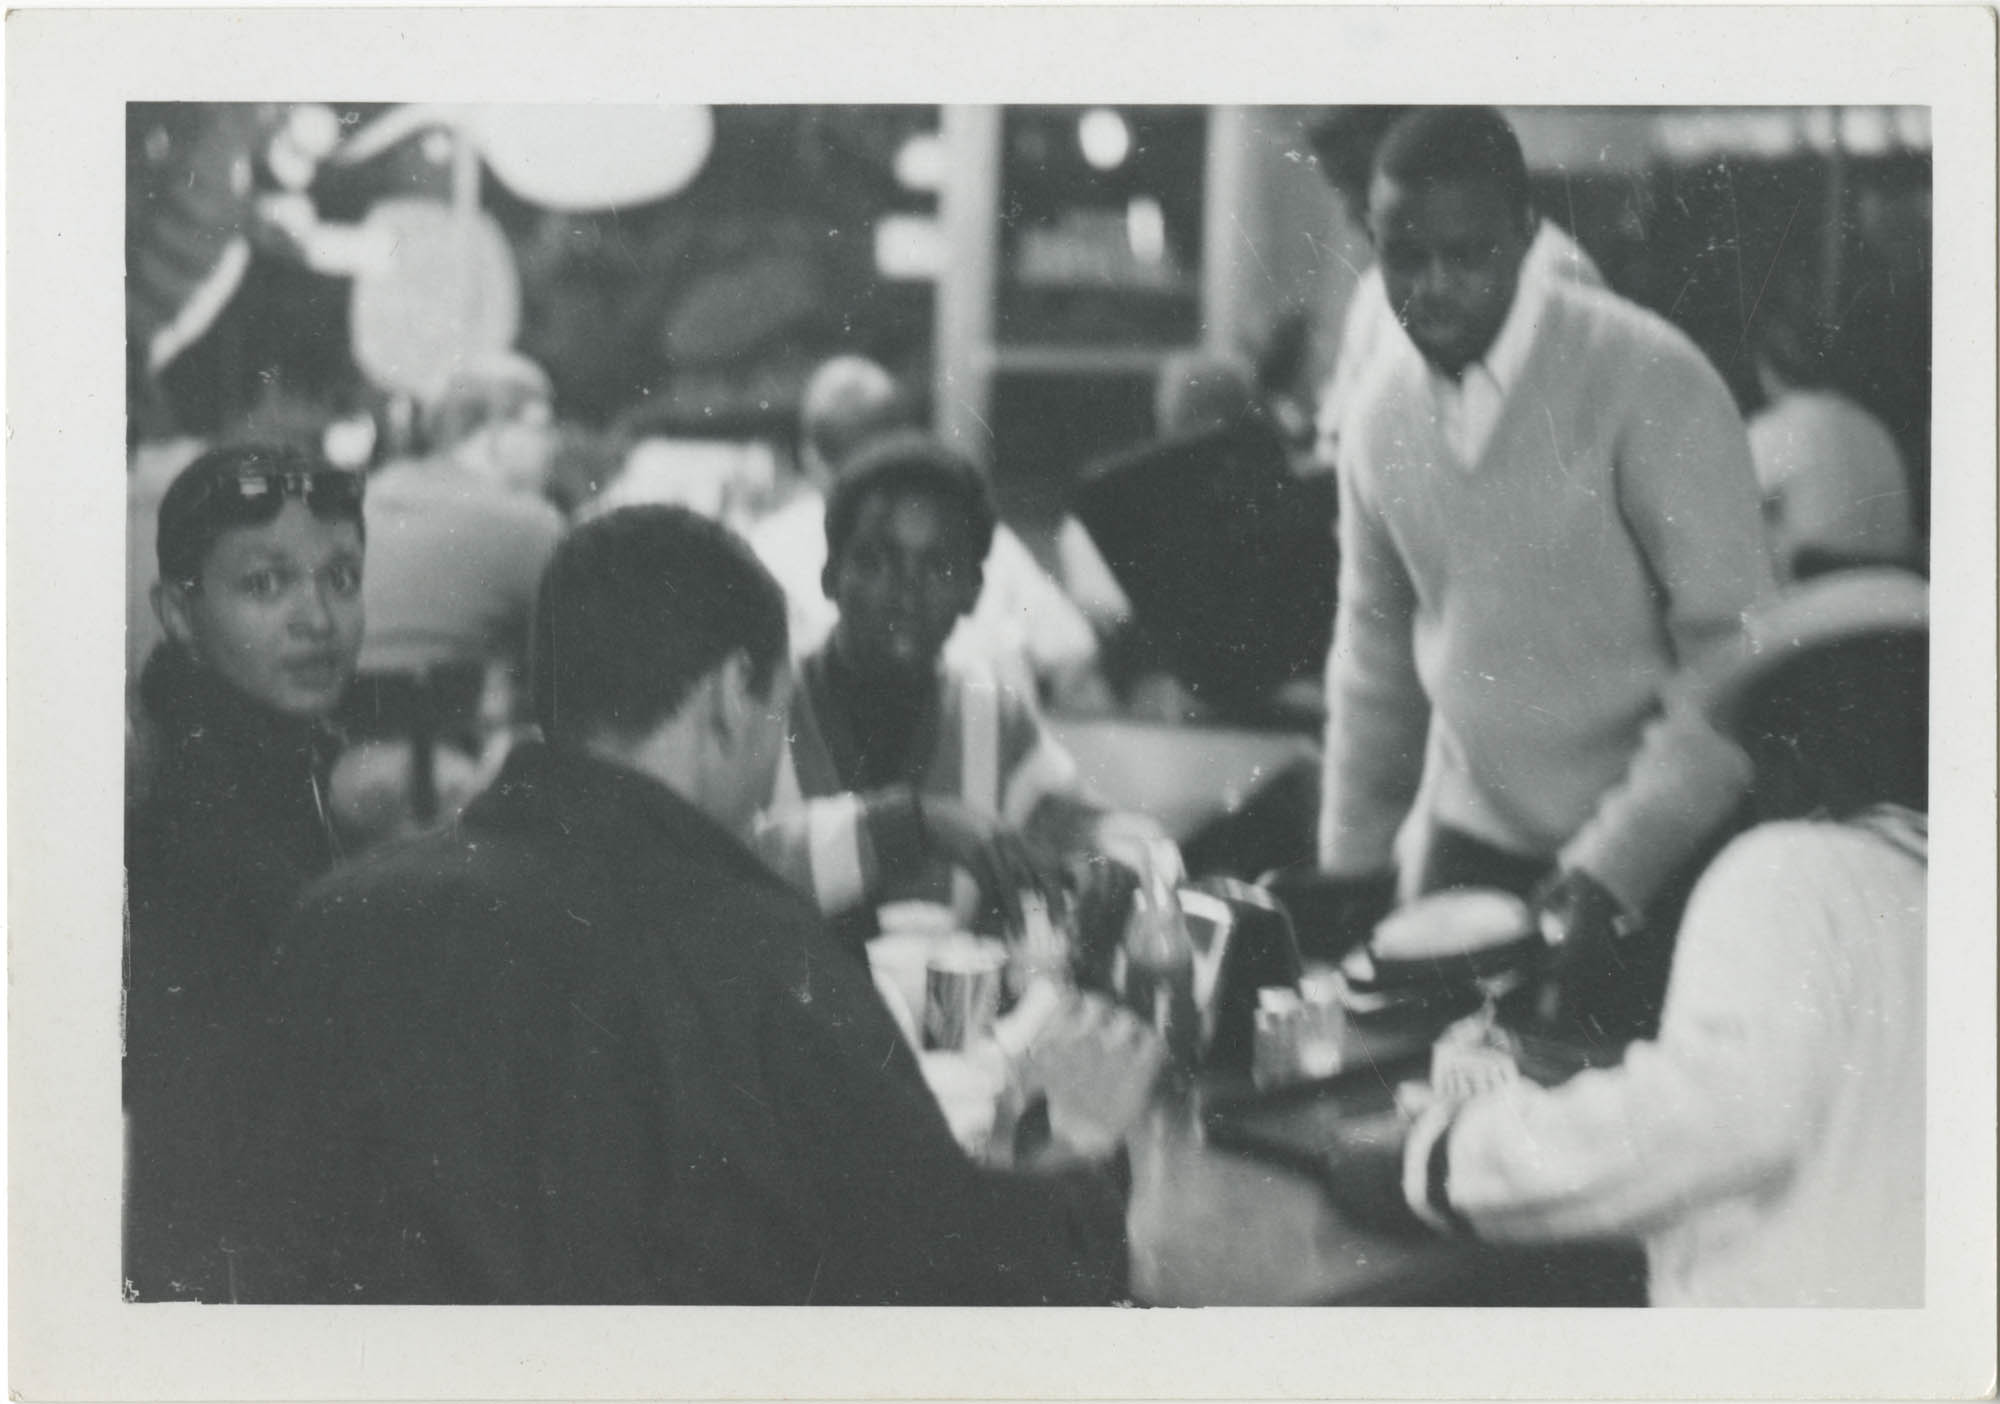 Photograph of Five Young Men Eating